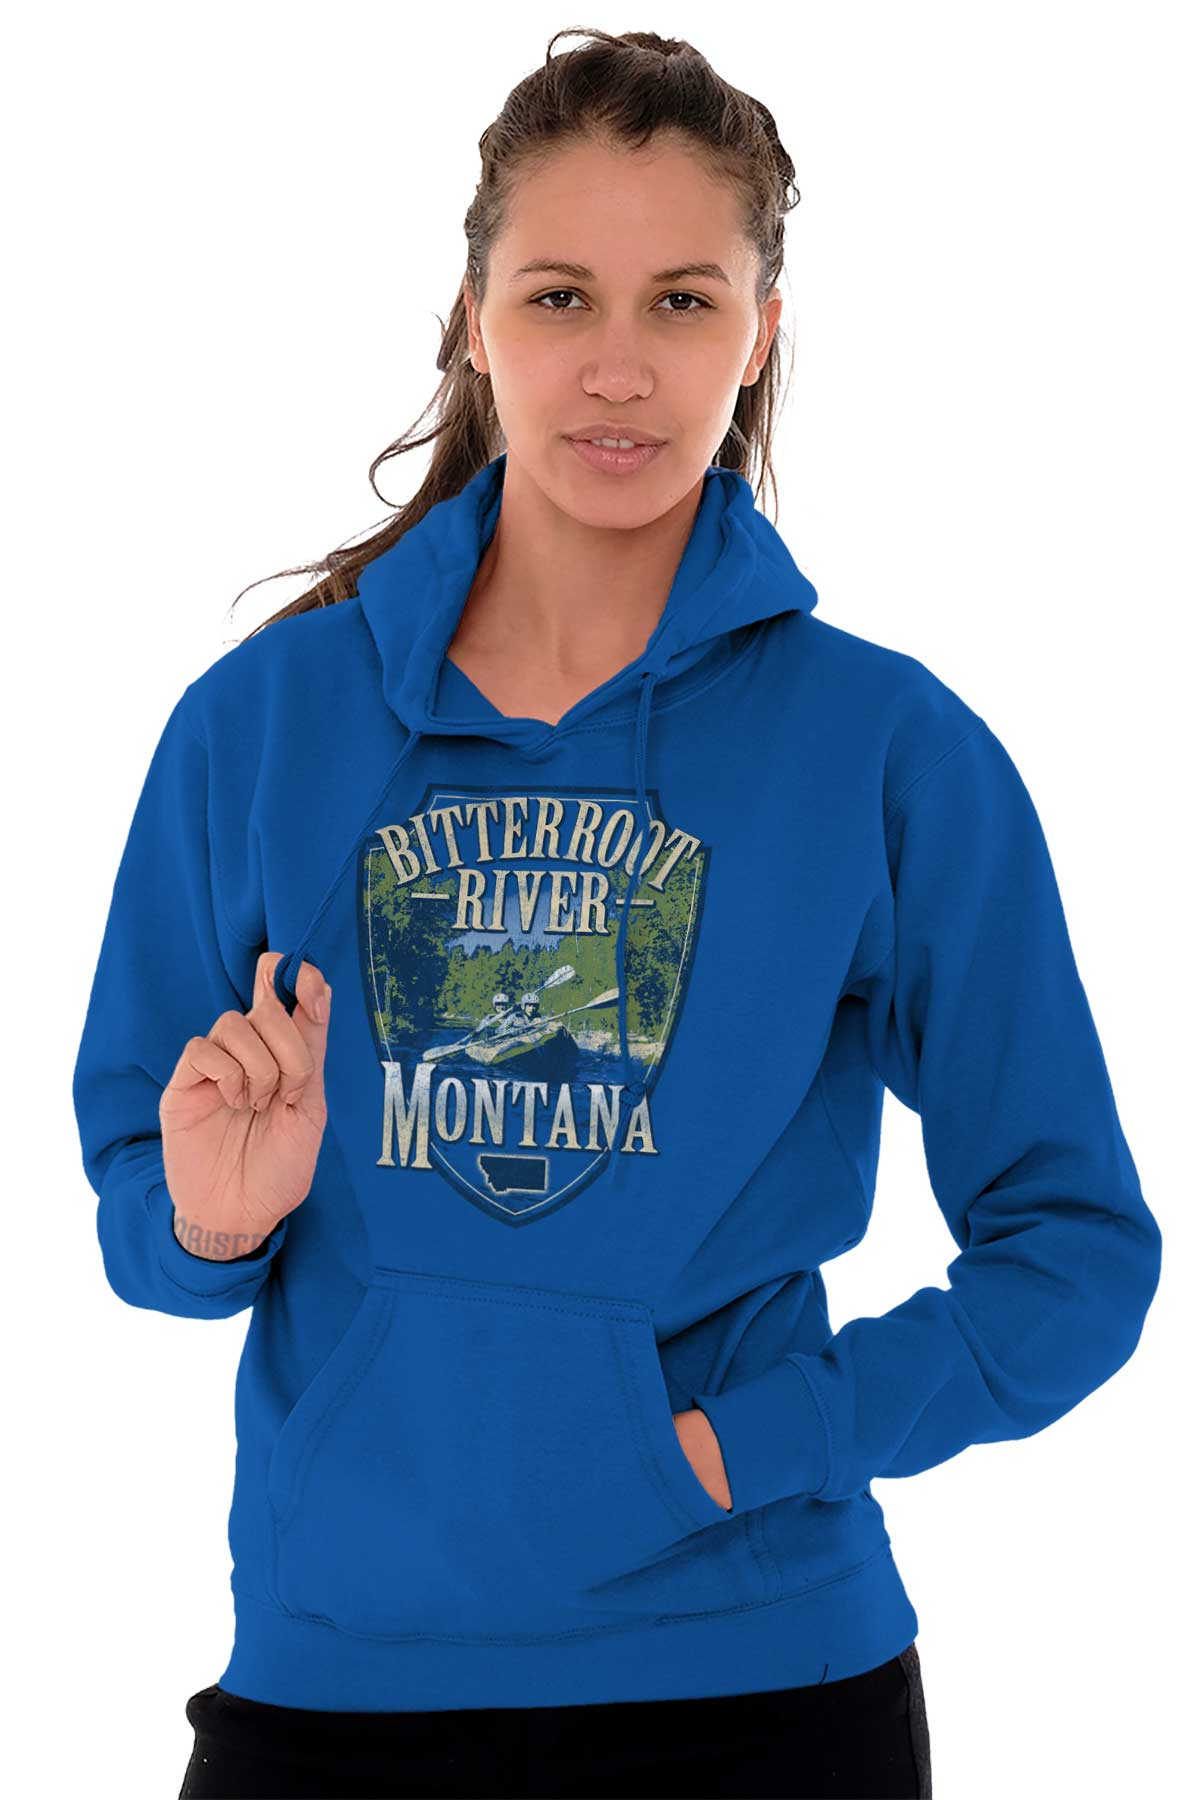 Montana Athletic Vacation State Pride Gift Hoodies Sweat Shirts Sweatshirts